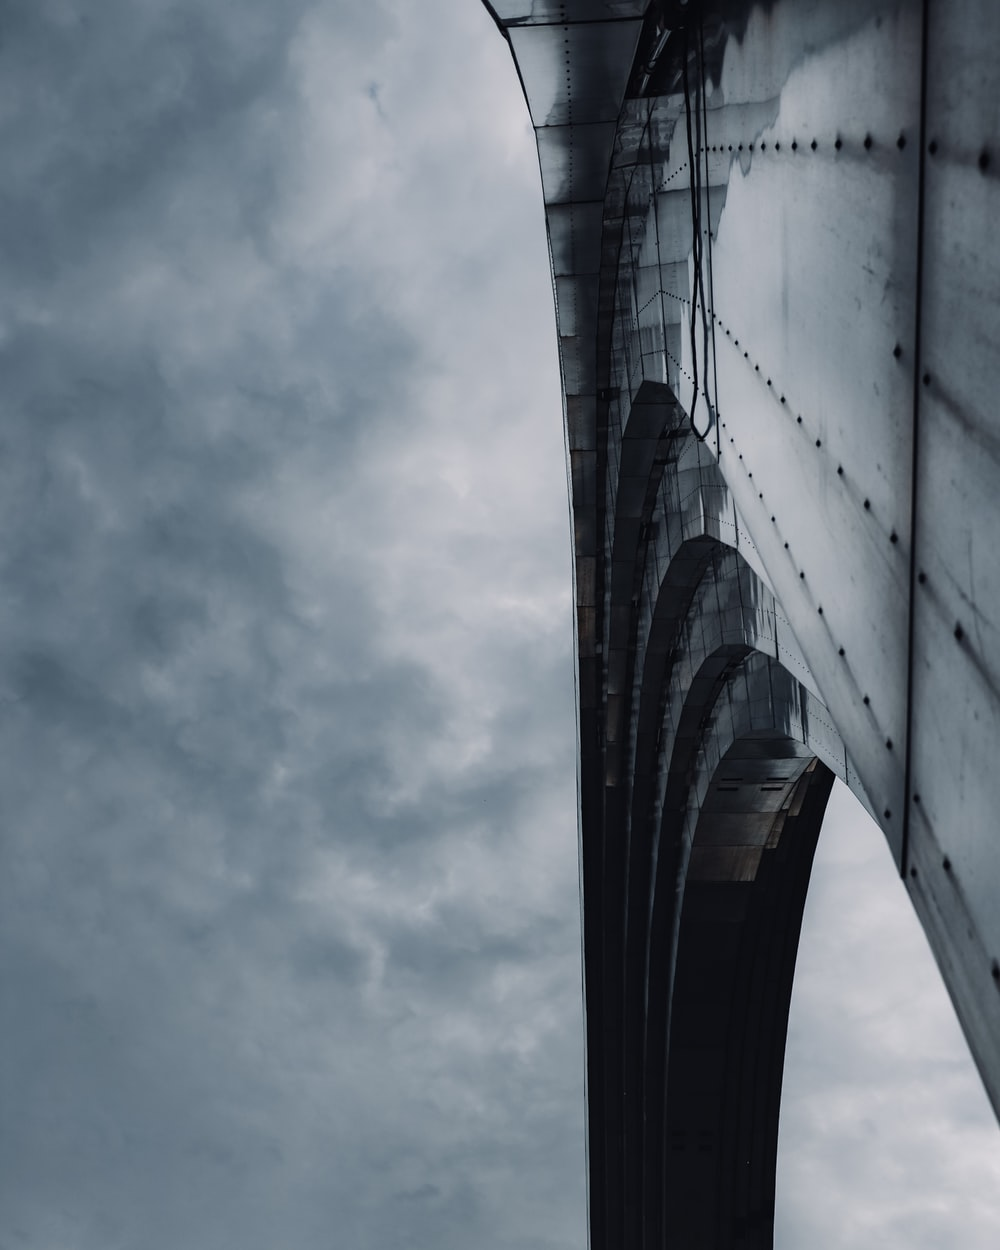 low angle photography of bridge under cloudy sky during daytime